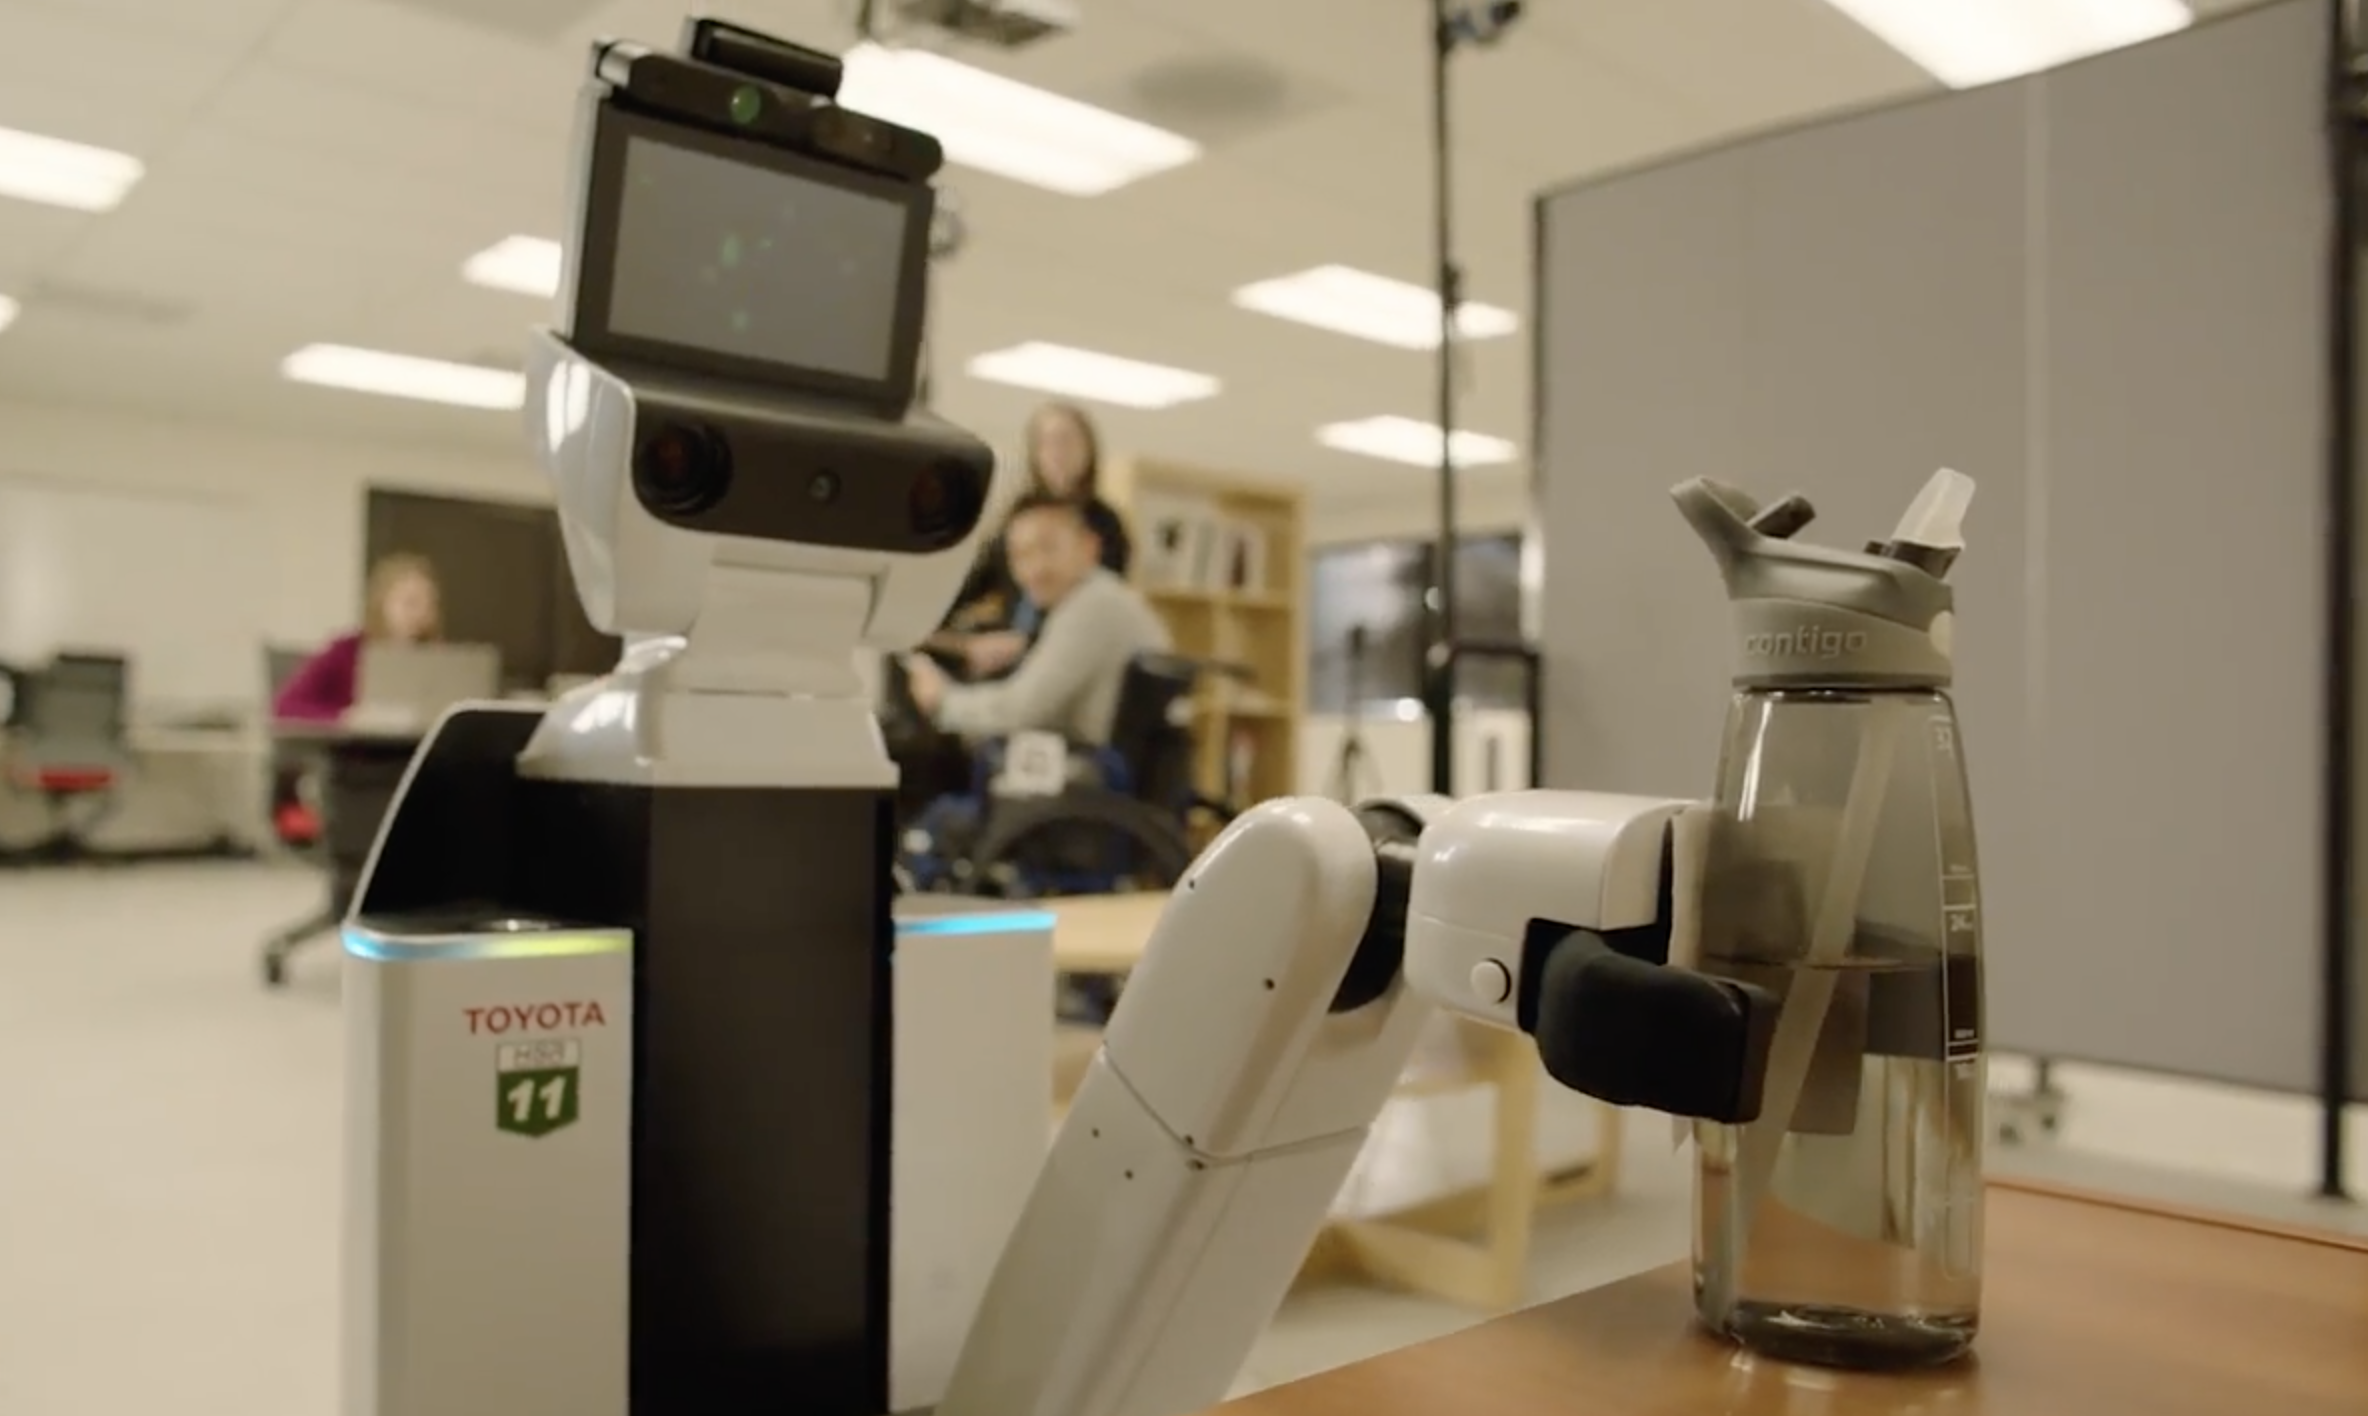 Toyota's Home Helper Is a Glimpse of Our Robot-Assisted Future